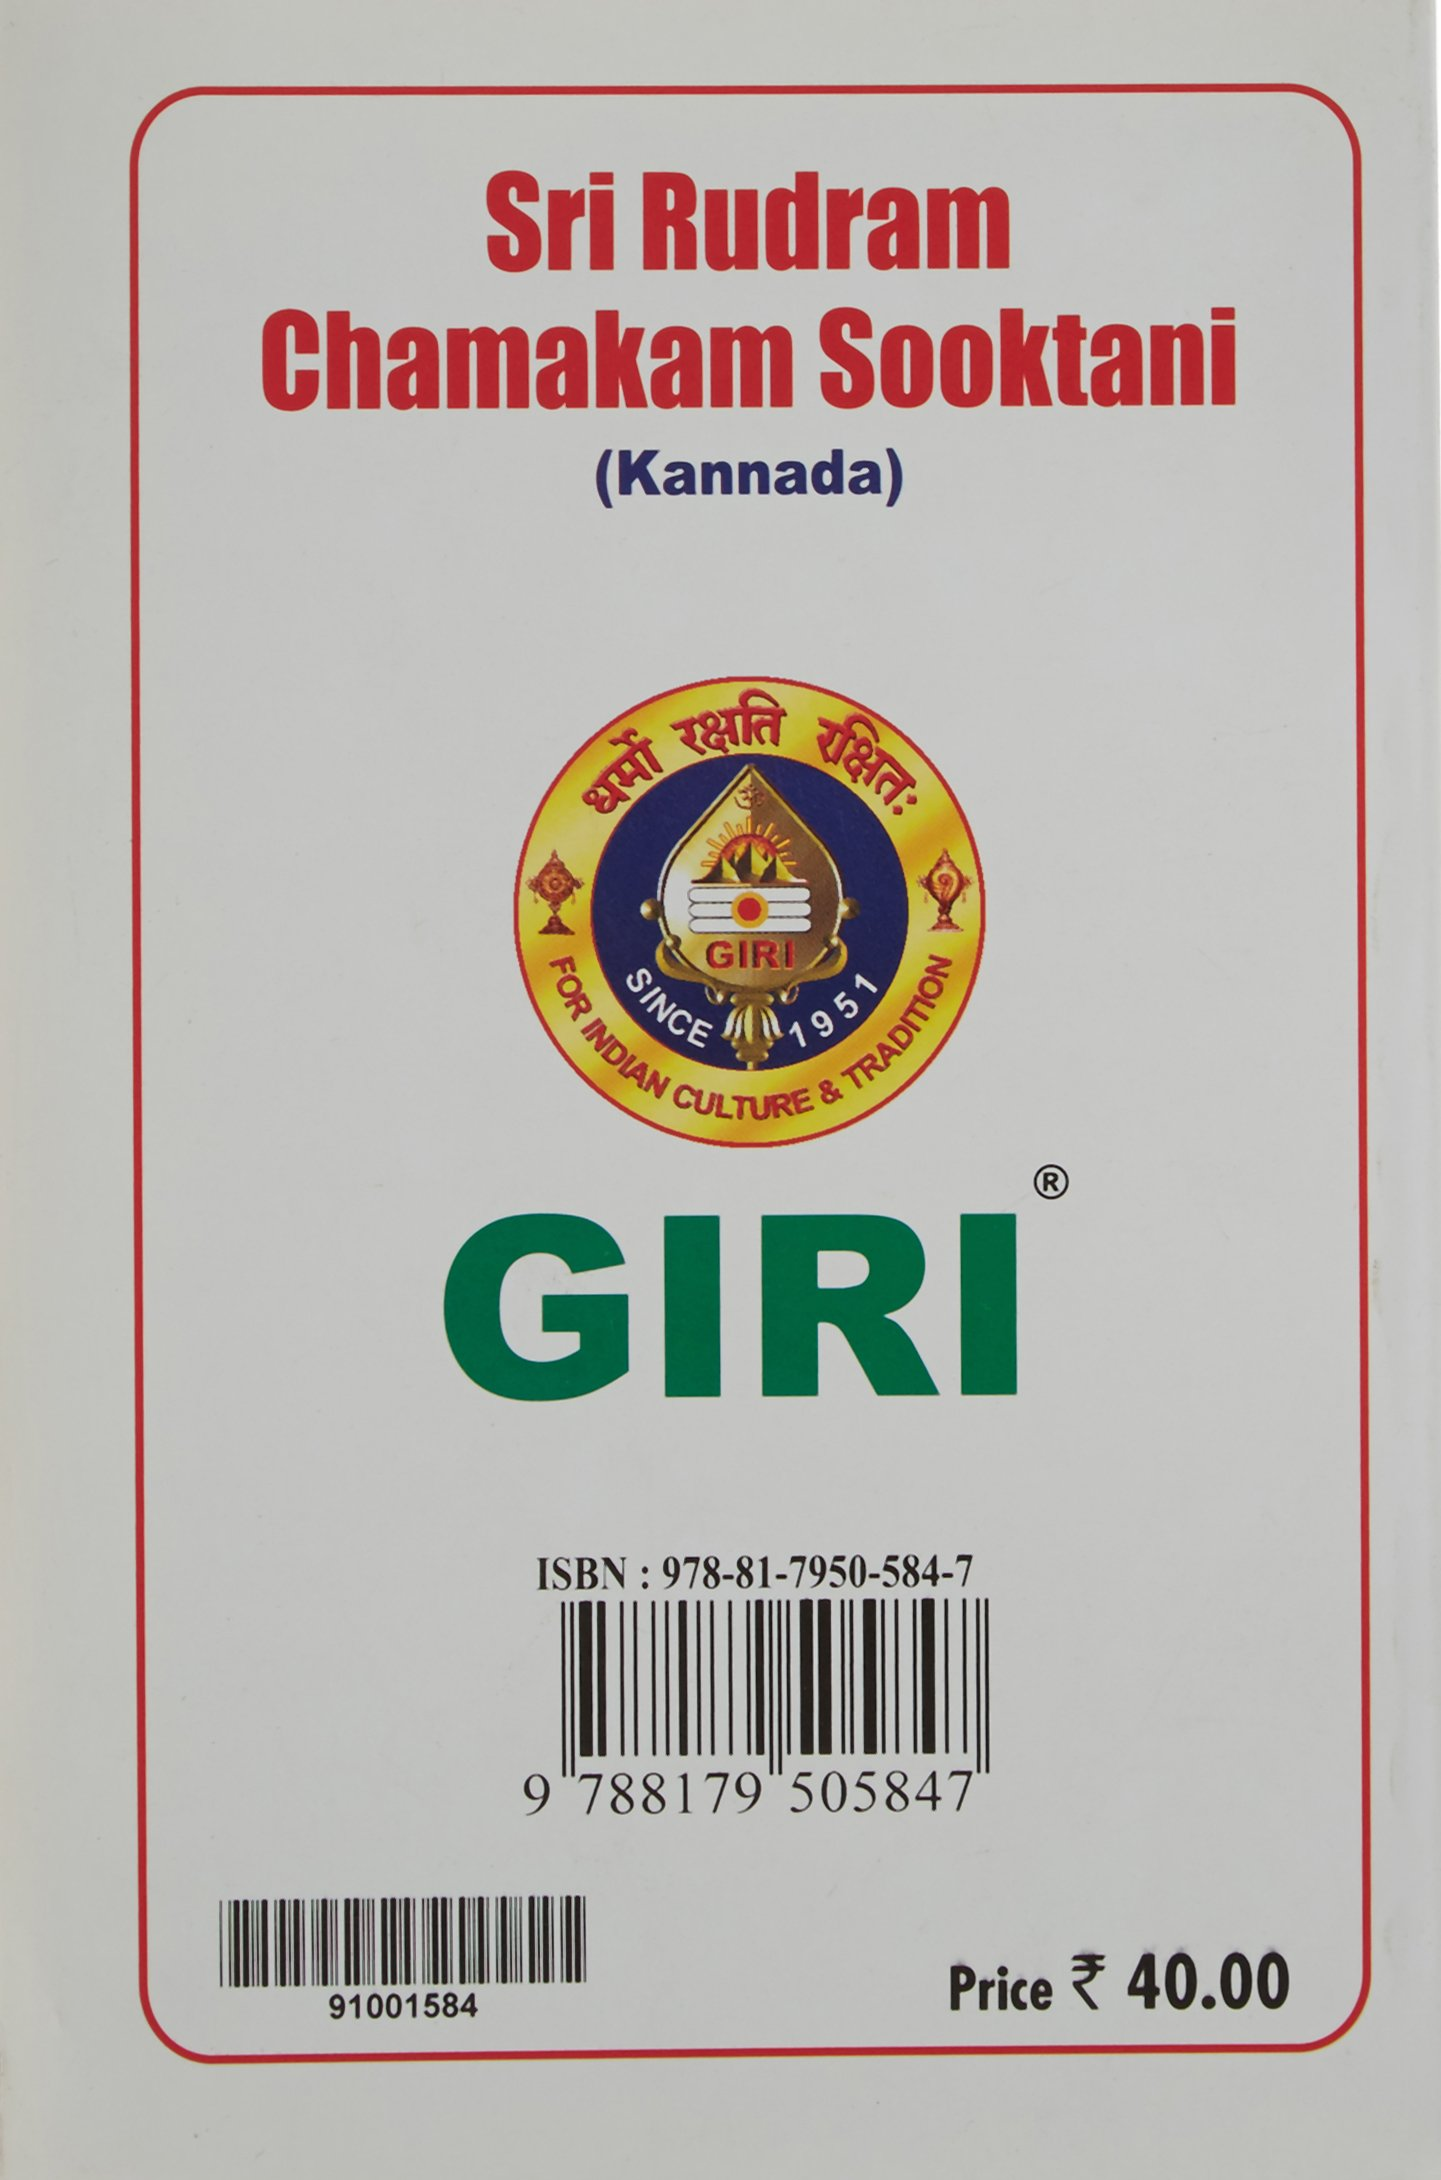 Buy sri rudram chamakam sooktani book online at low prices in india buy sri rudram chamakam sooktani book online at low prices in india sri rudram chamakam sooktani reviews ratings amazon fandeluxe Choice Image